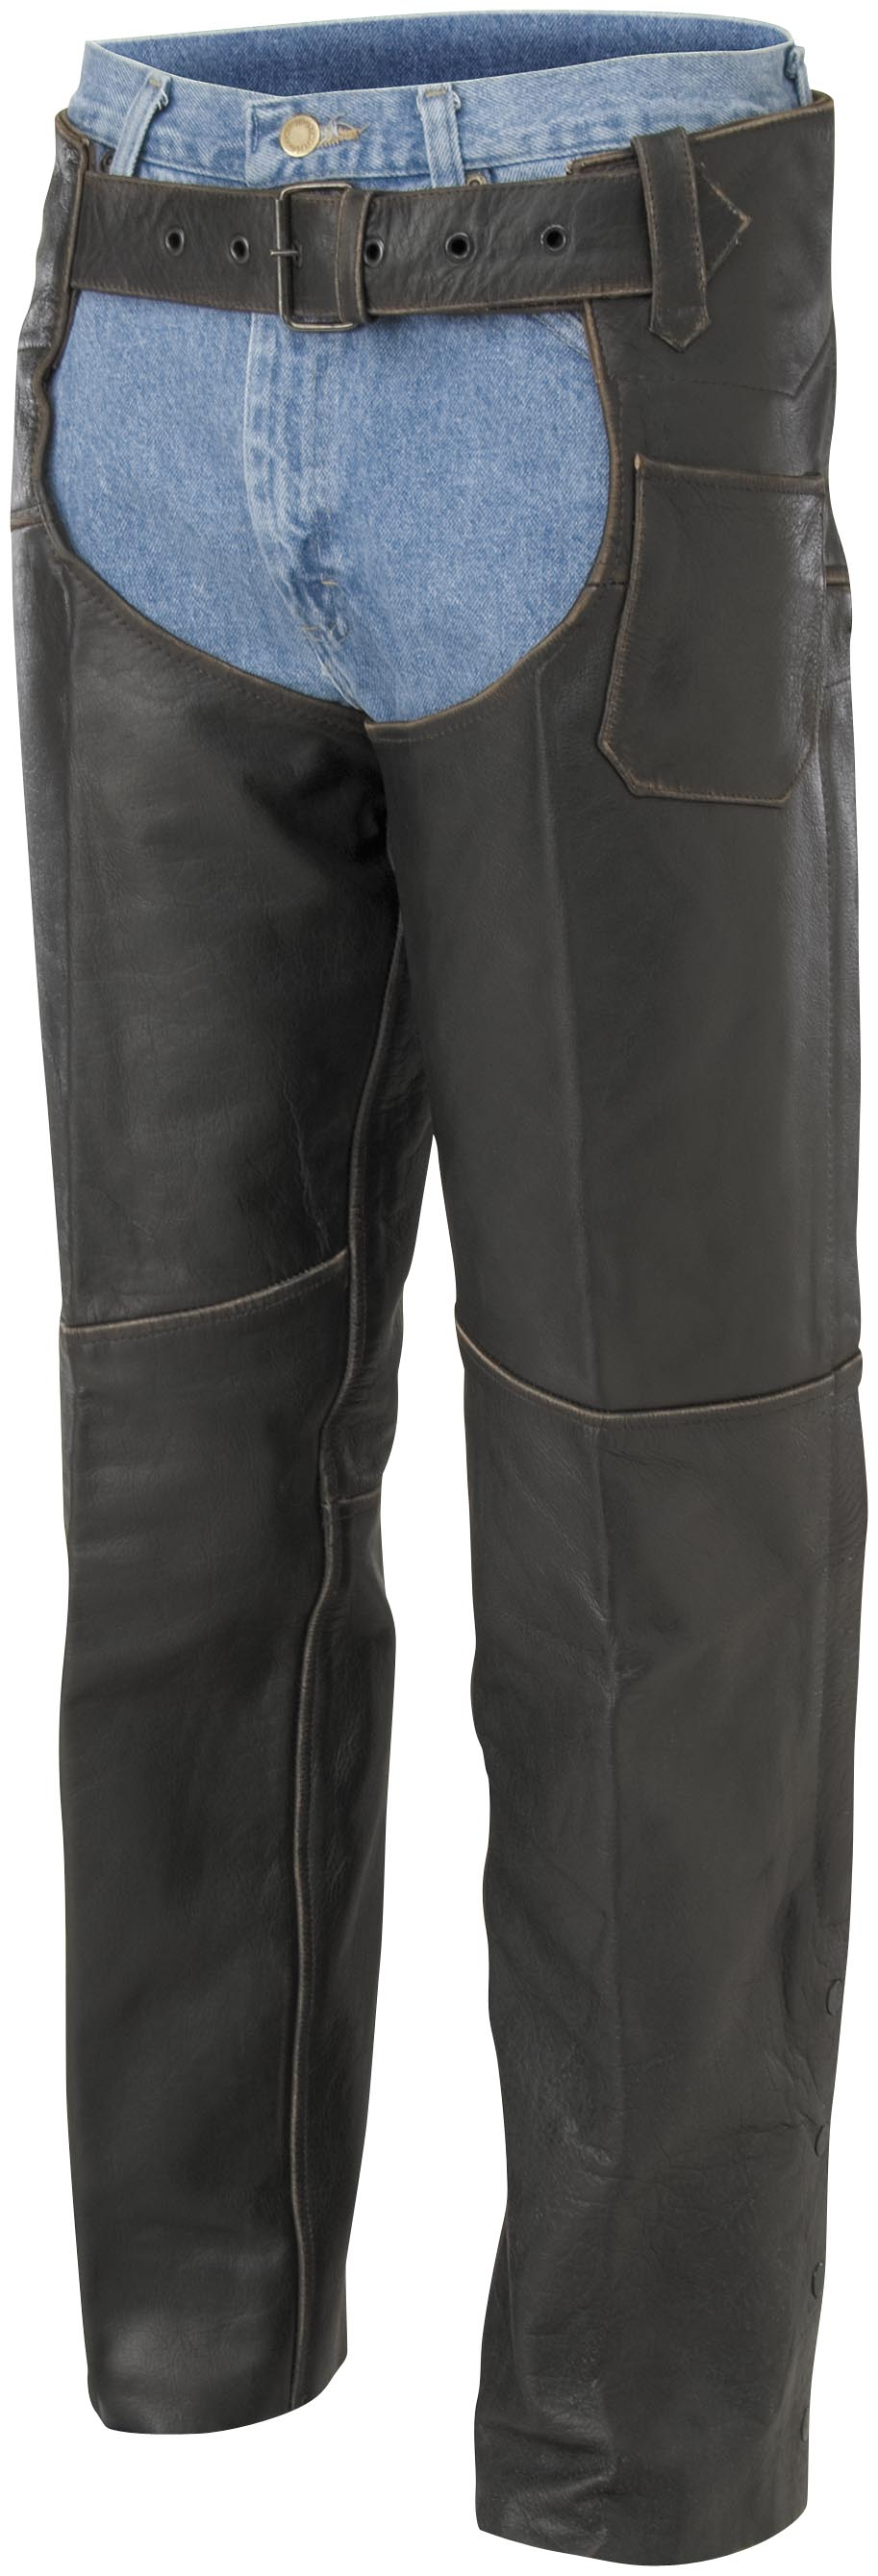 River Road Vintage Leather Chaps